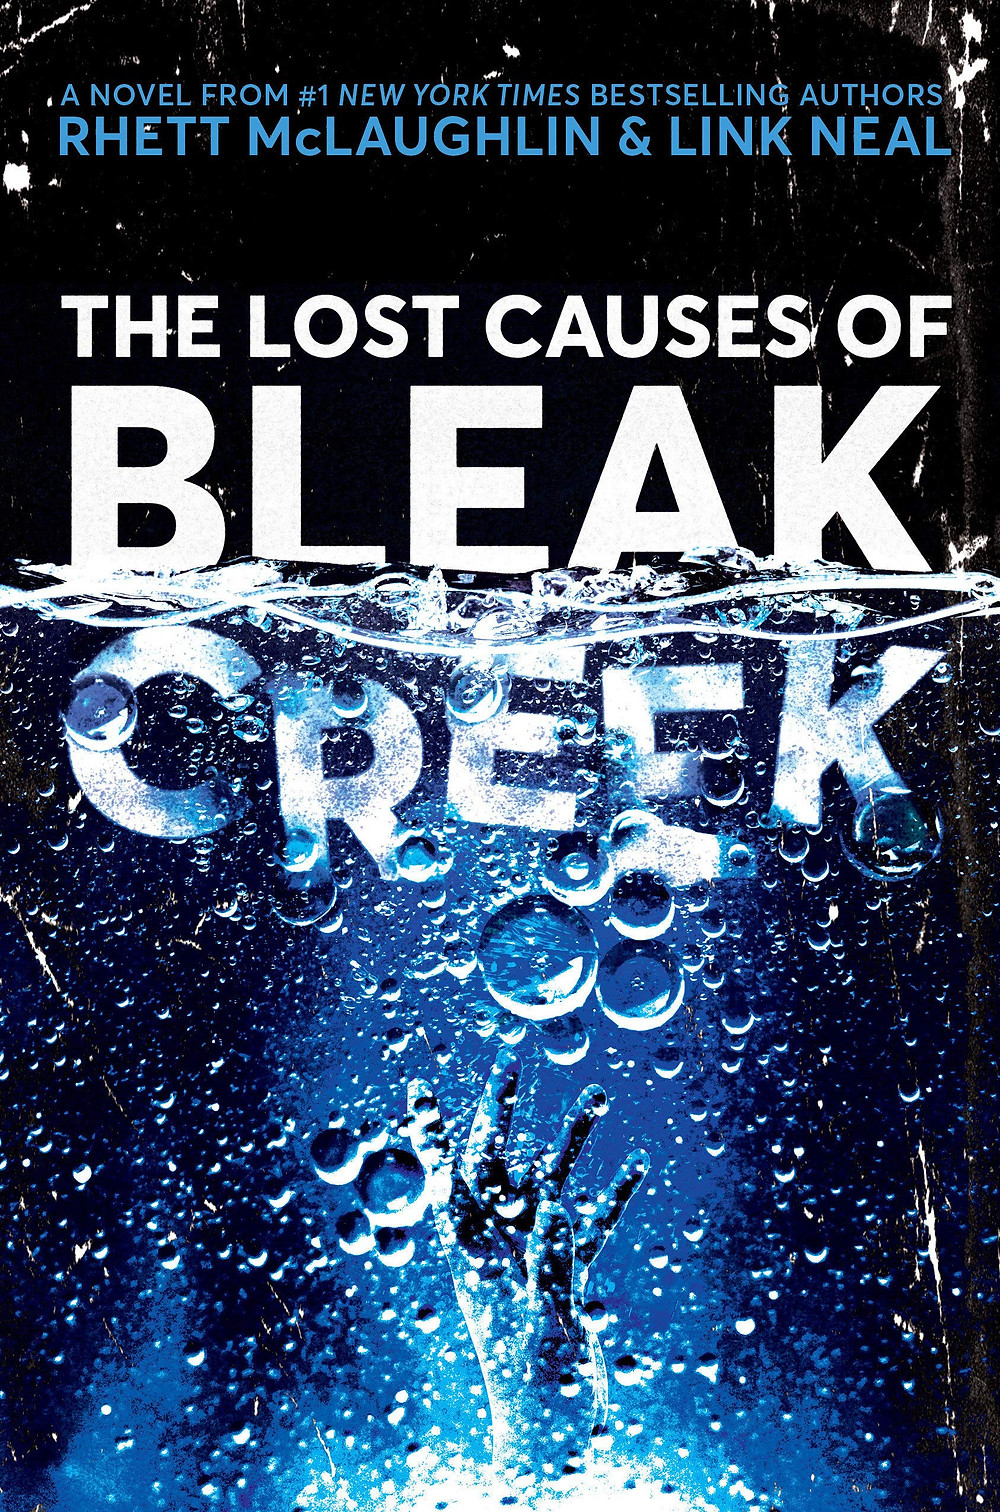 The Lost Causes of Bleak Creek by Rhett McLaughlin & Link Neal | Book Review